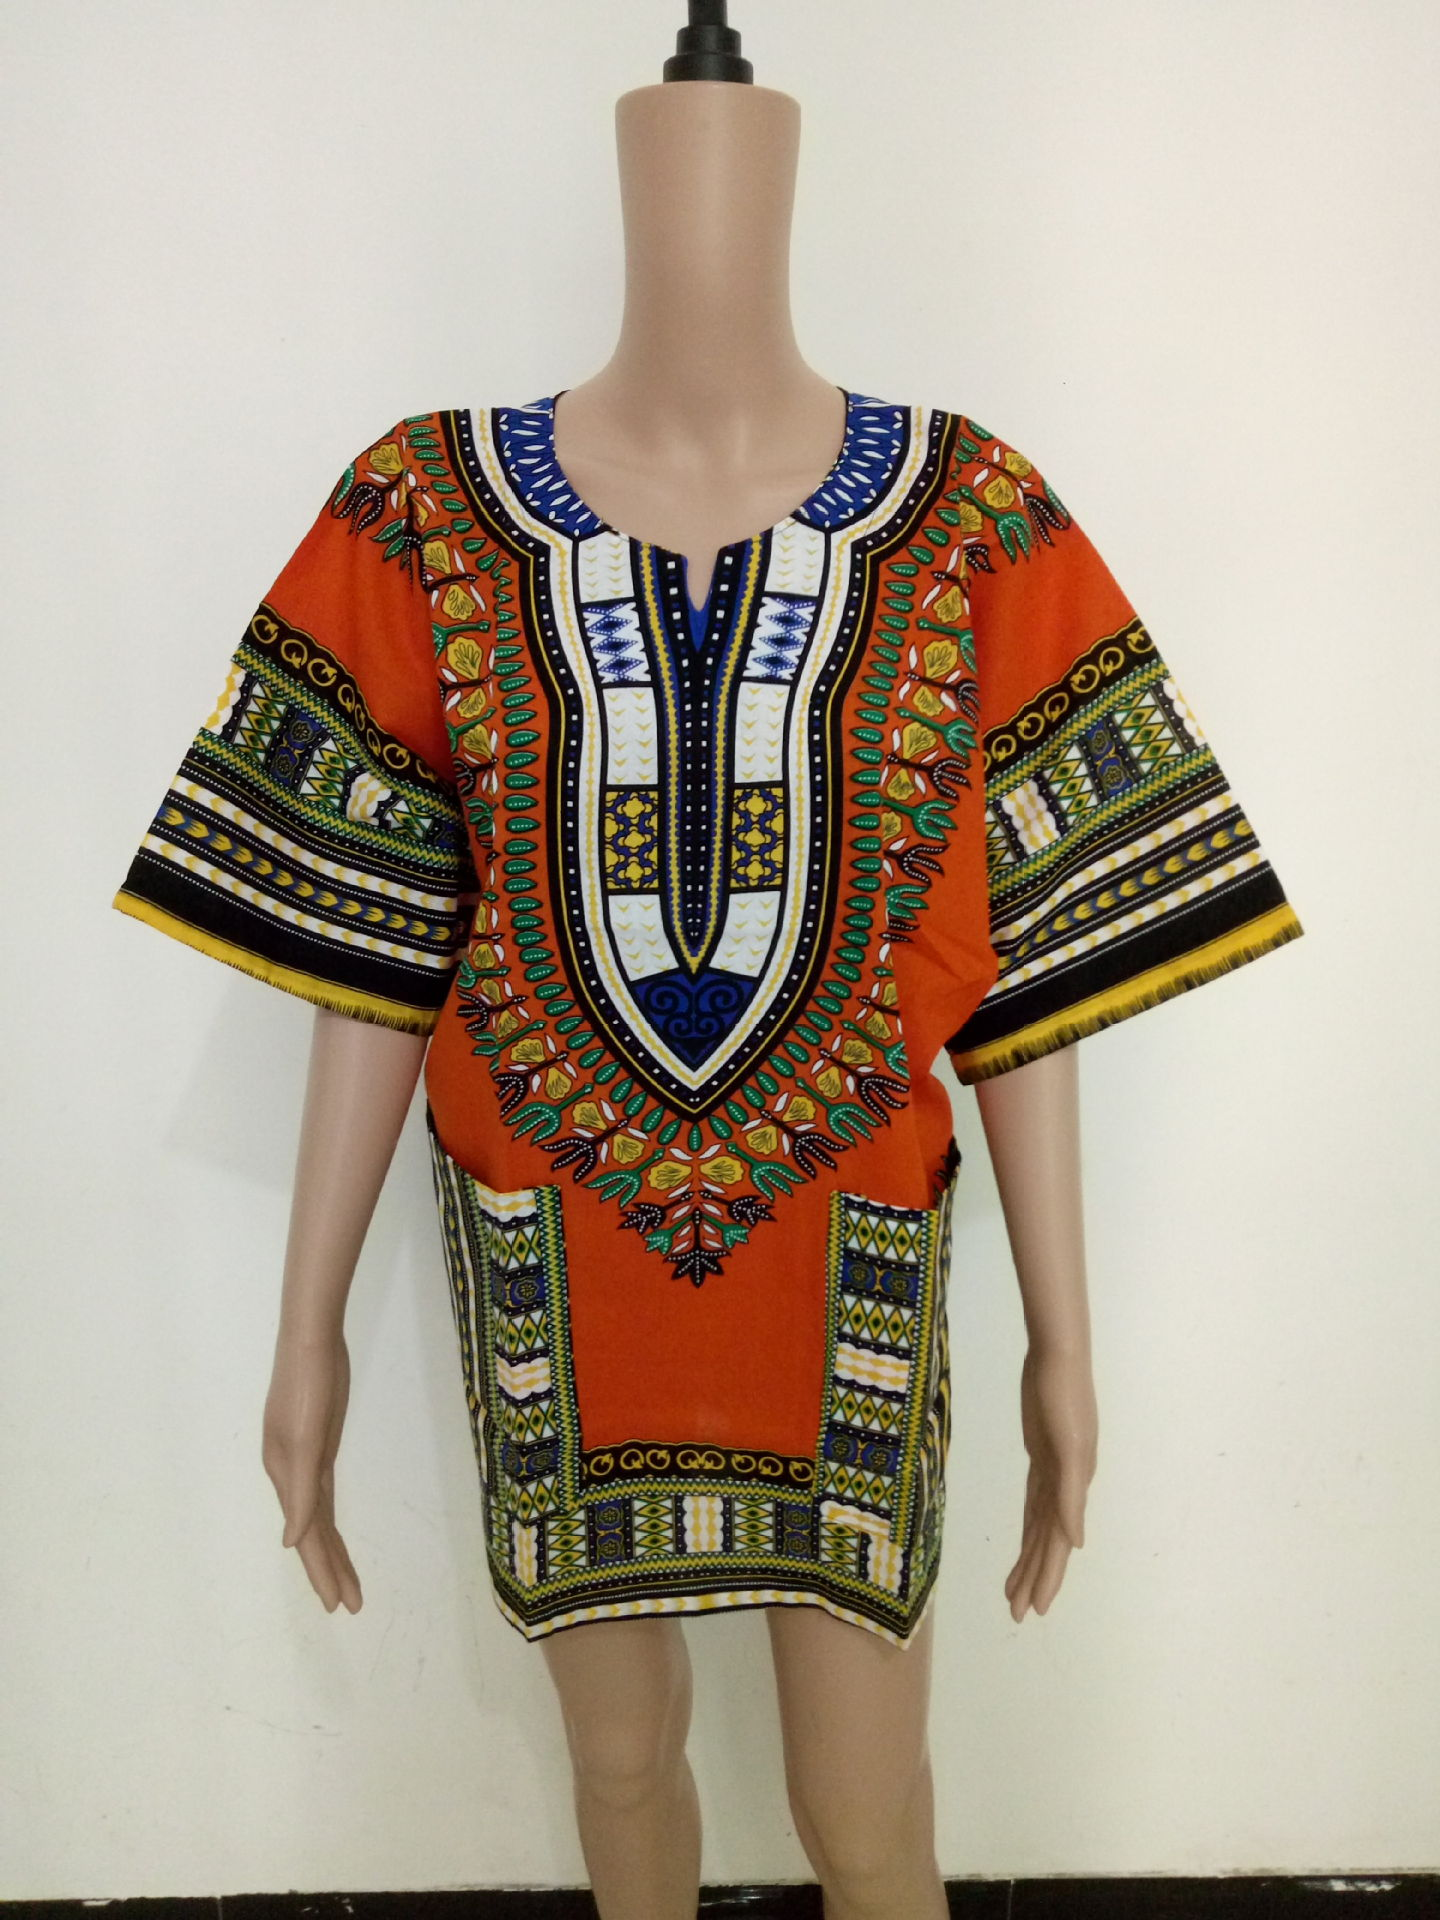 Calcas masculina tradition femmes africaines tops mujer bazin robe - Vêtements nationaux - Photo 2